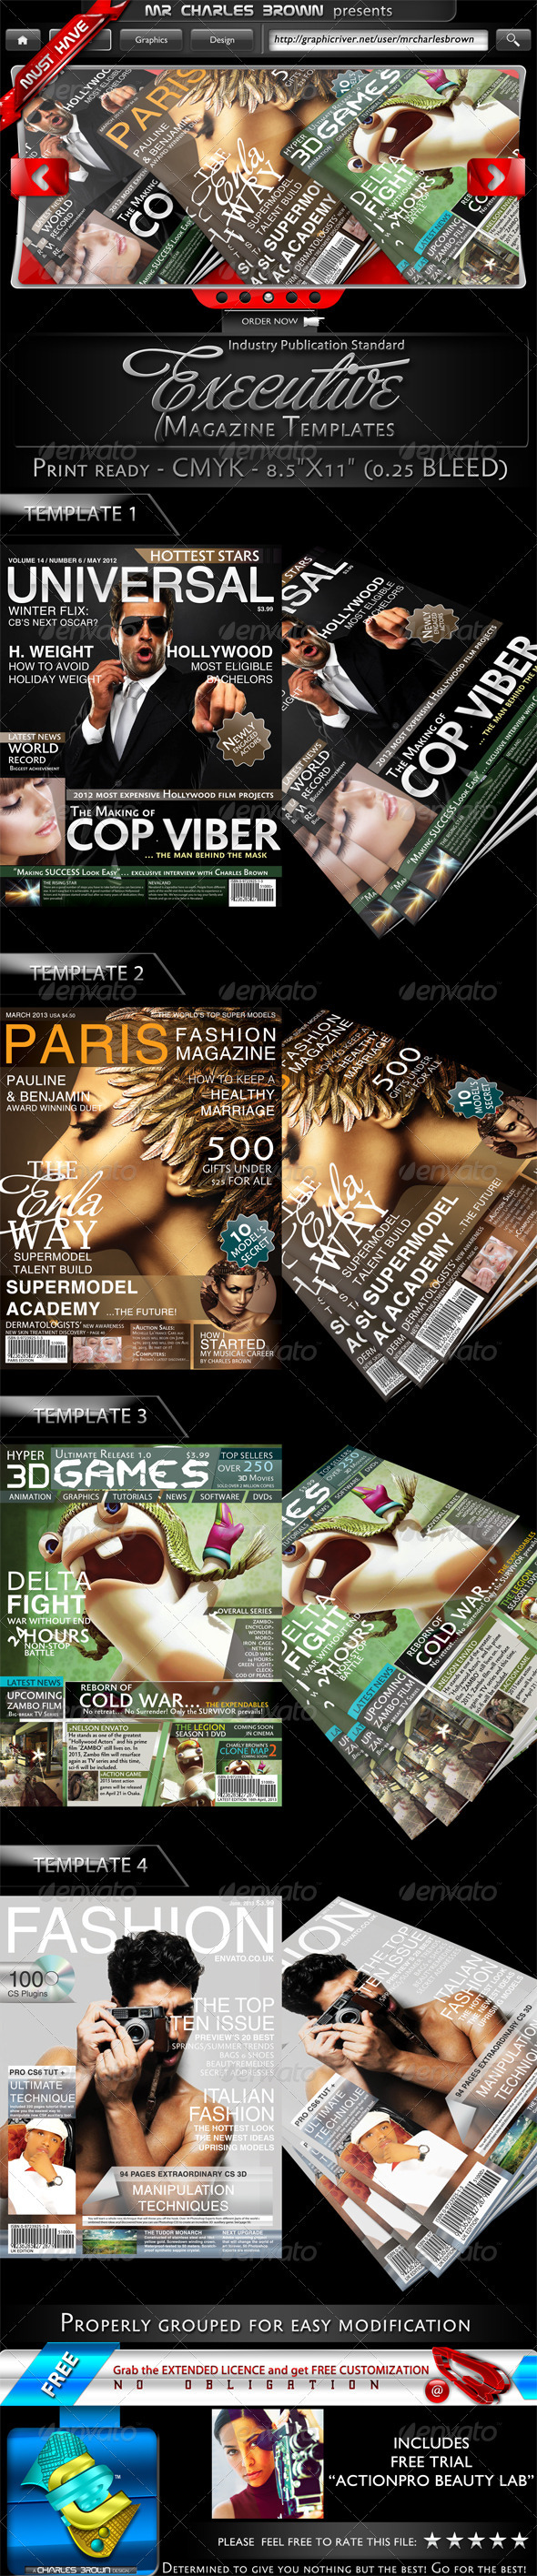 4 Executive Magazine Templates